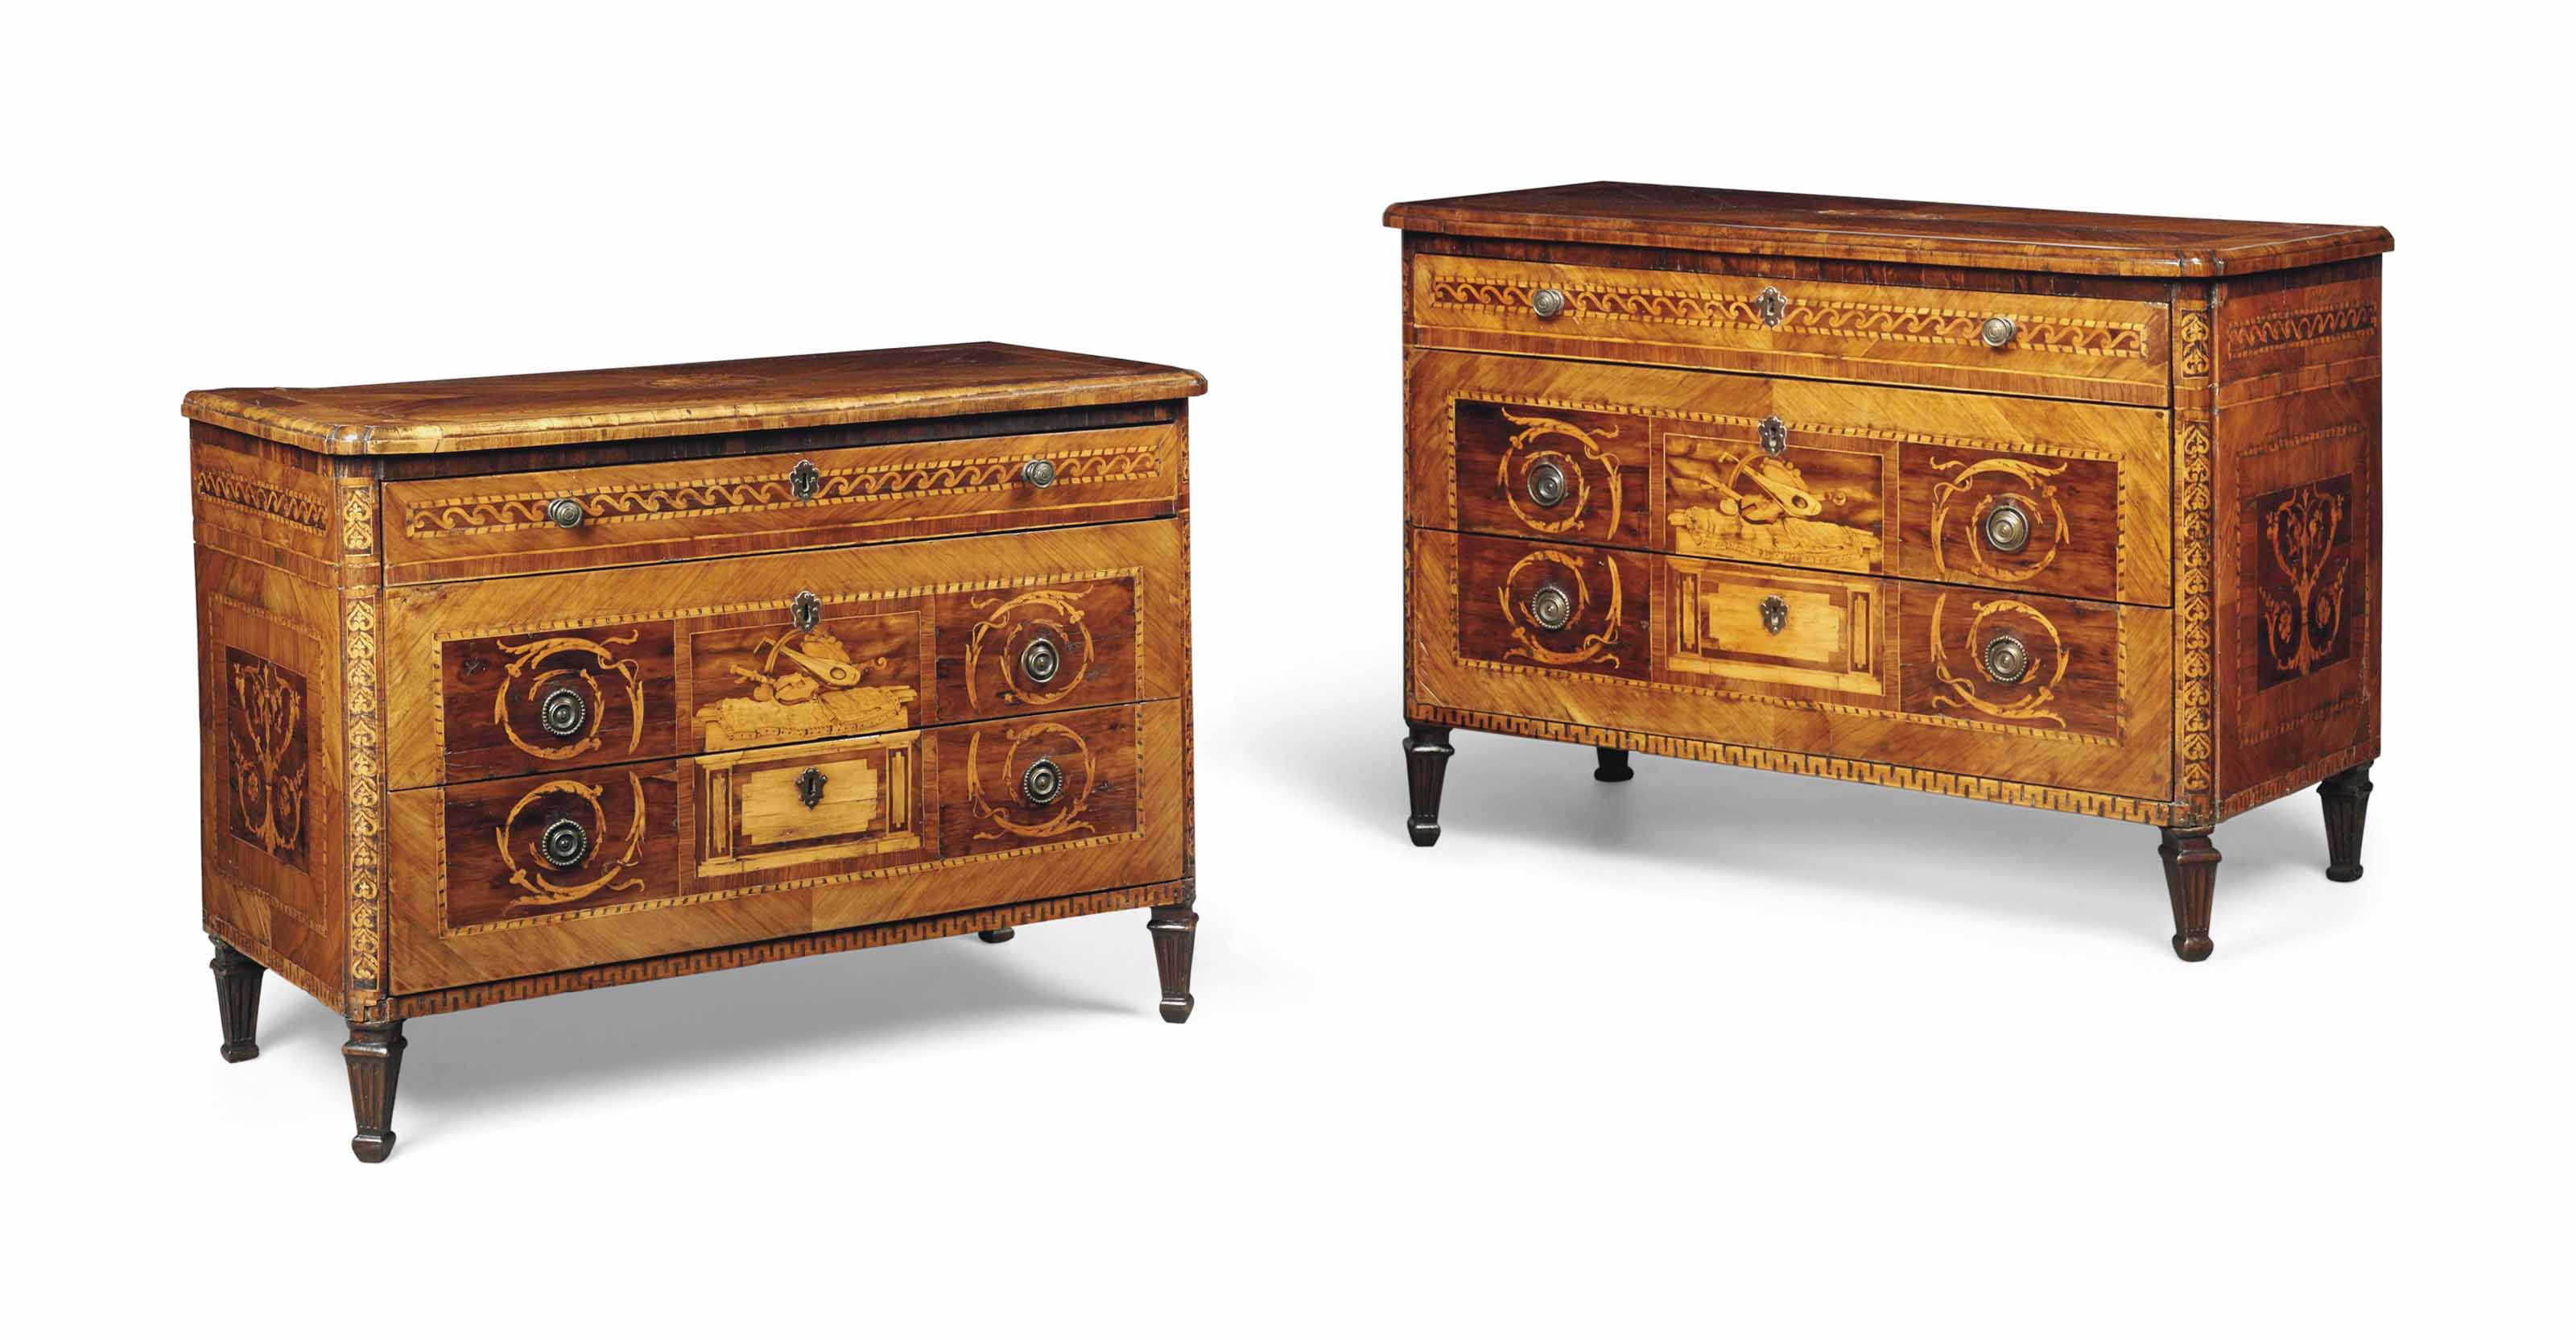 A PAIR OF NORTH ITALIAN WALNUT, FRUITWOOD AND MARQUETRY COMMODES